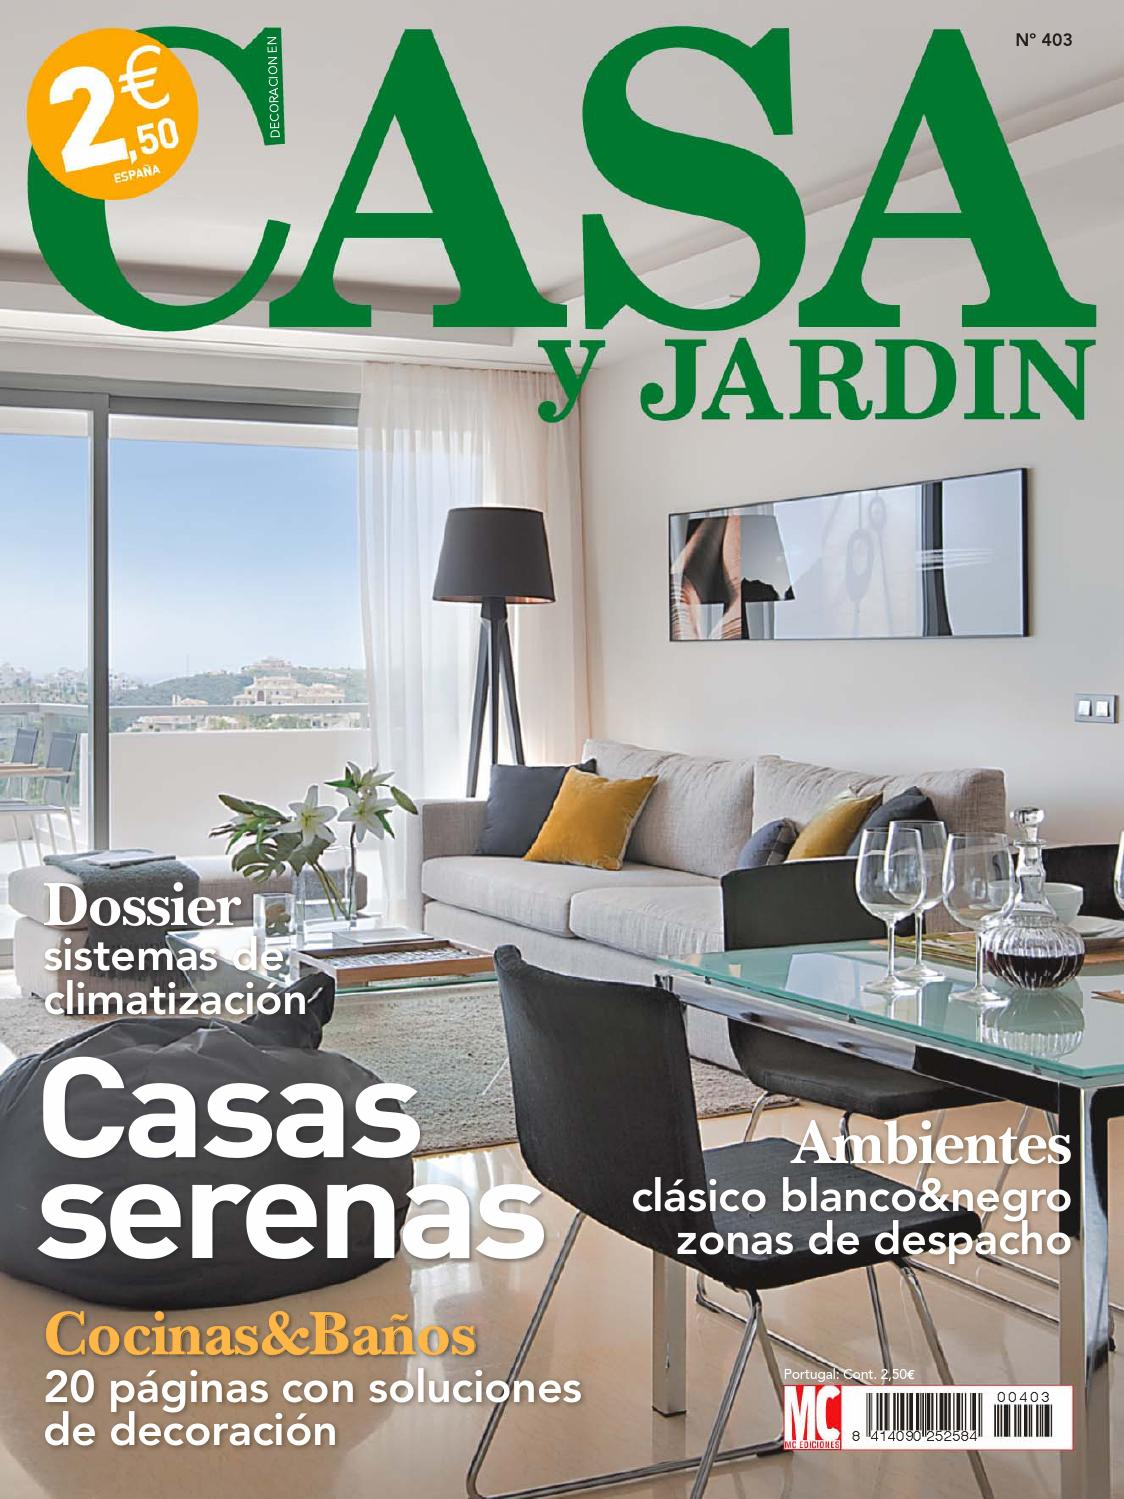 Casa y jardin by sucalon issuu for Casa y jardin tienda decoracion